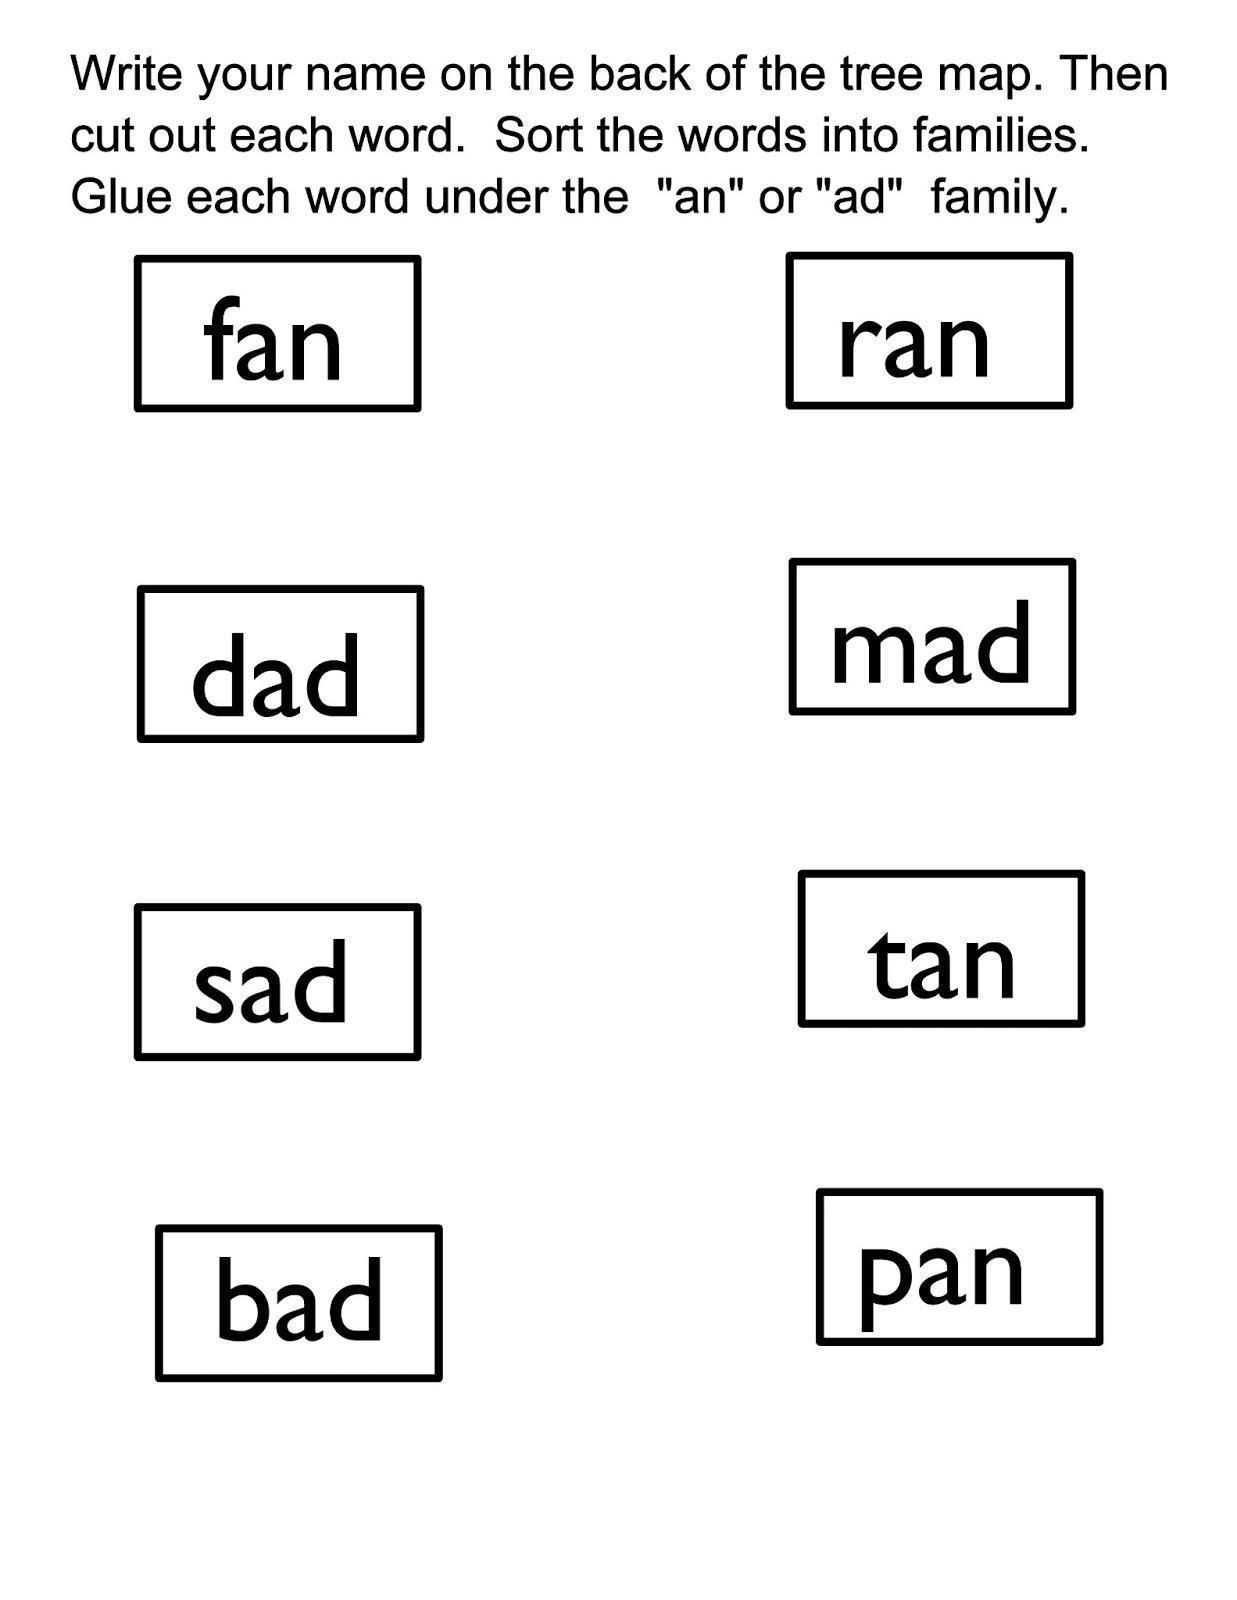 Balancing A Checkbook Worksheet for Students with Word Family Worksheet Image Collections Worksheet for Kids In English